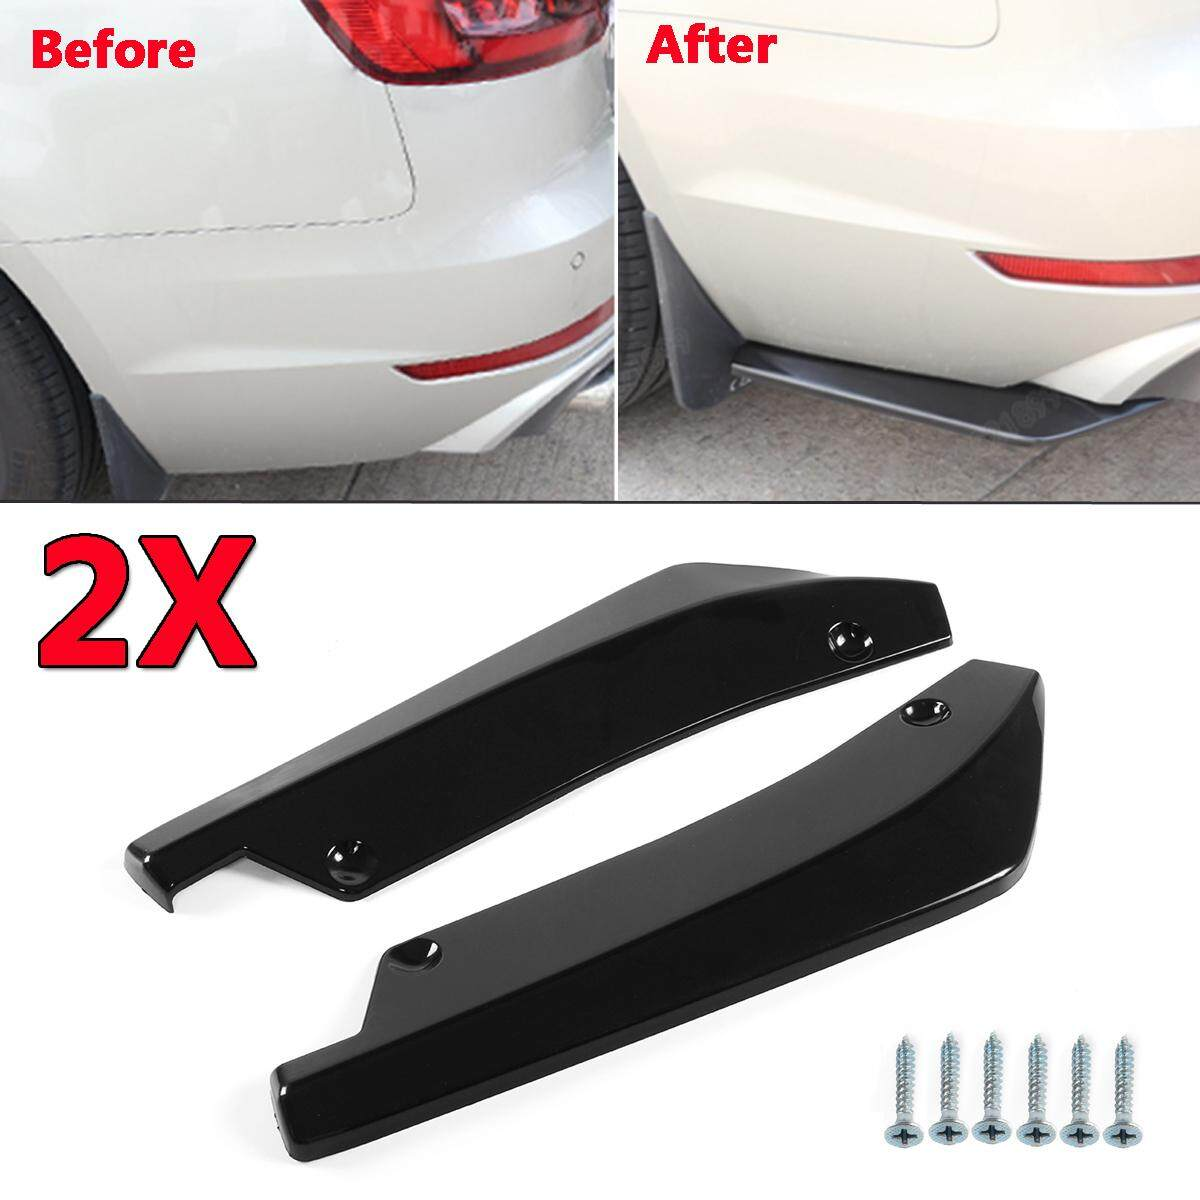 Universal Car Bright Black Rear Bumper Lip Wrap Angle Splitters With Bolts Abs By Audew.